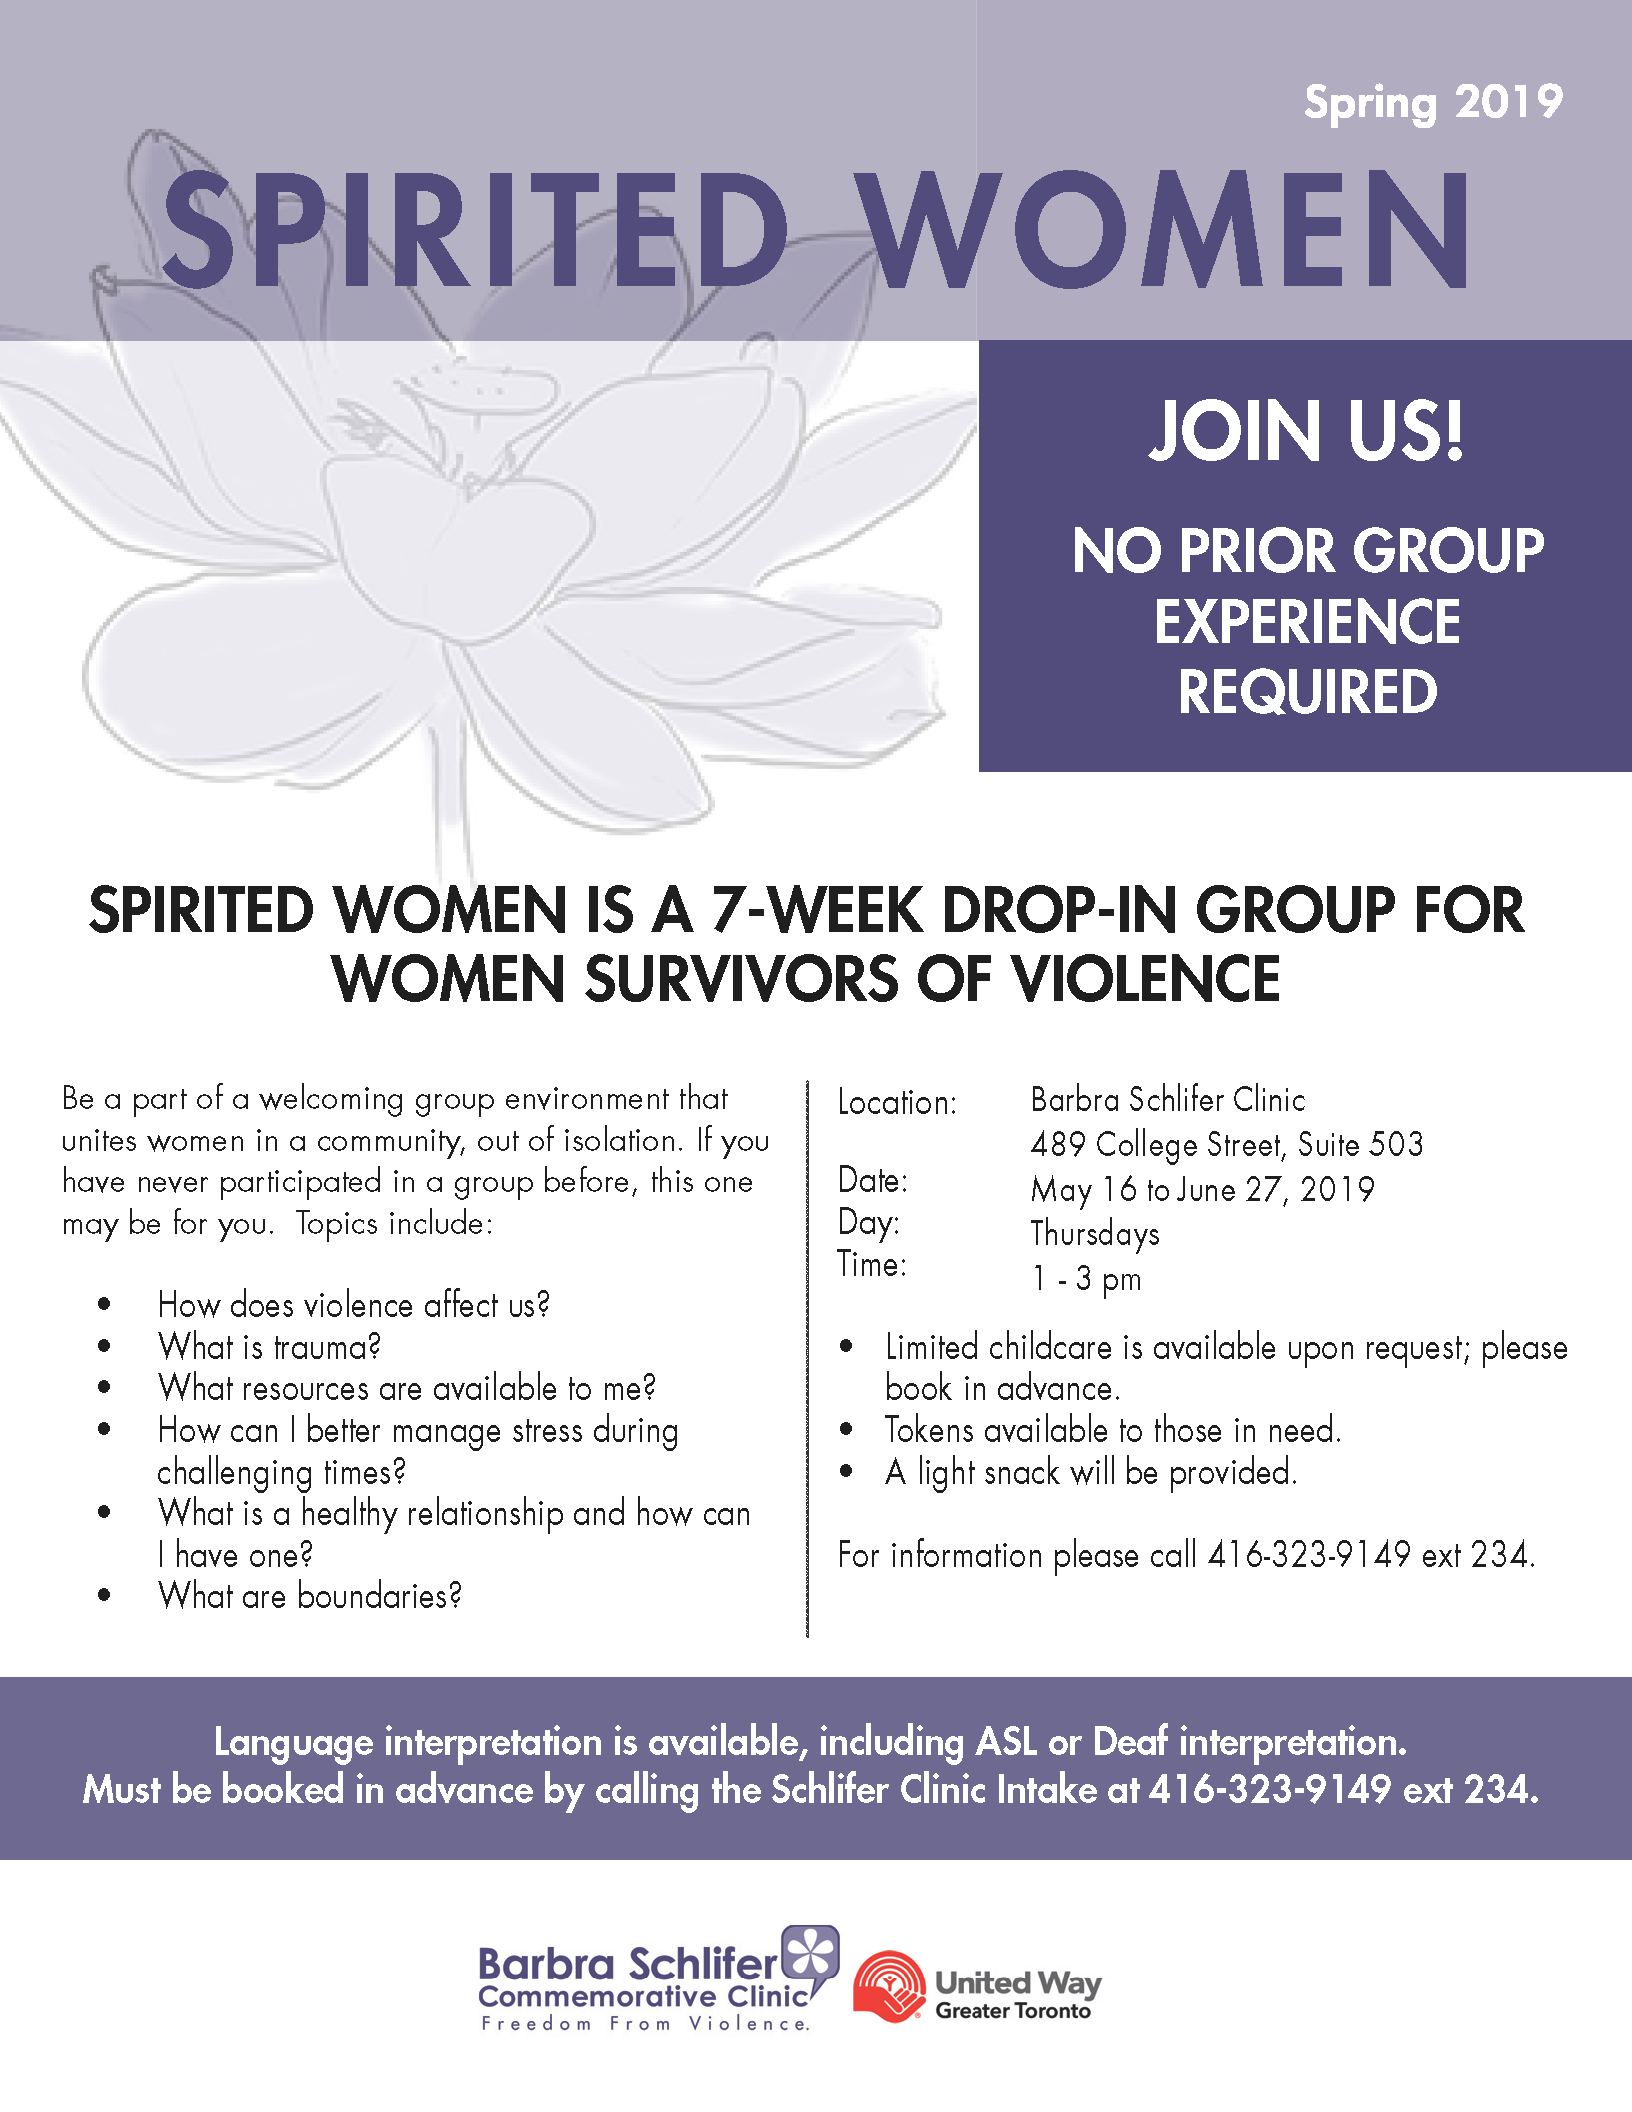 Registration is not needed to attend the Spirited Women group